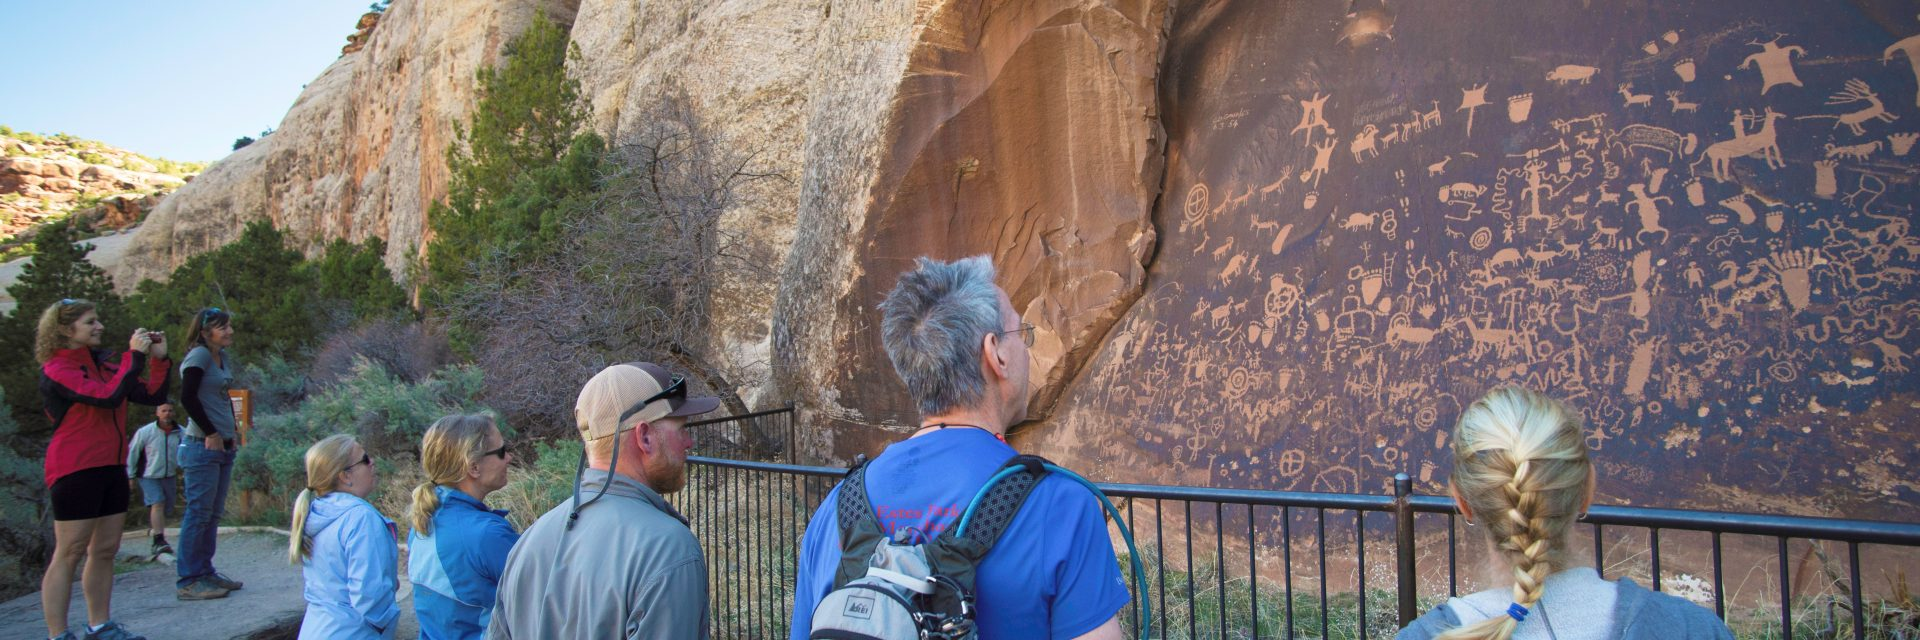 A group of mountain bikers takes in the Newspaper Rock ancient Indian rock art panel on day one of The Needles to Moab guided tour